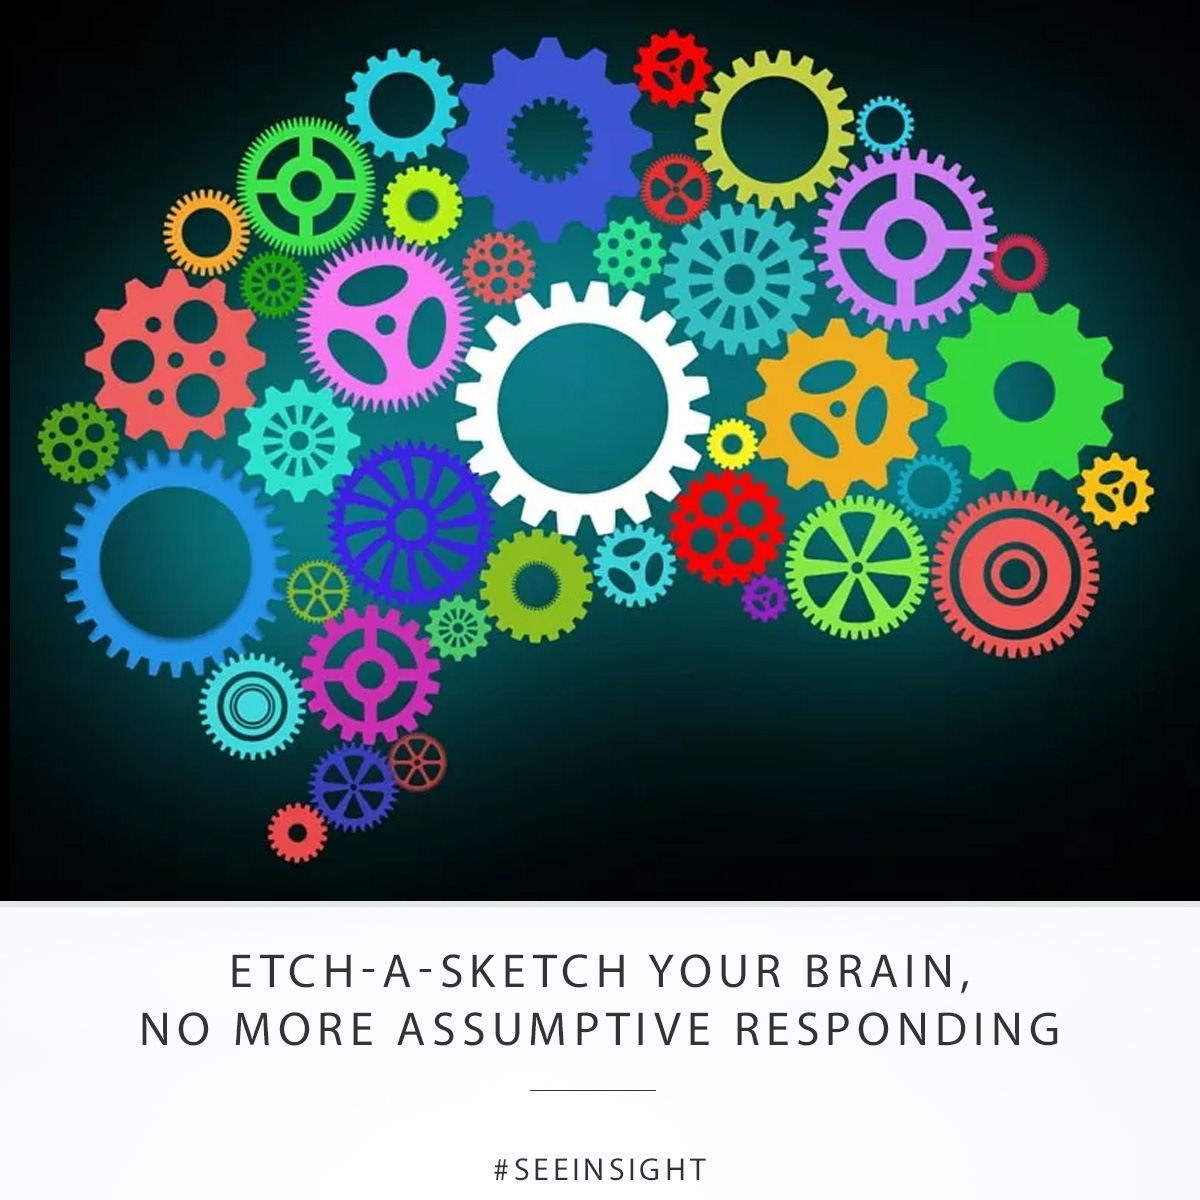 Etch-A-Sketch Your Brain, No More Assumptive Responding